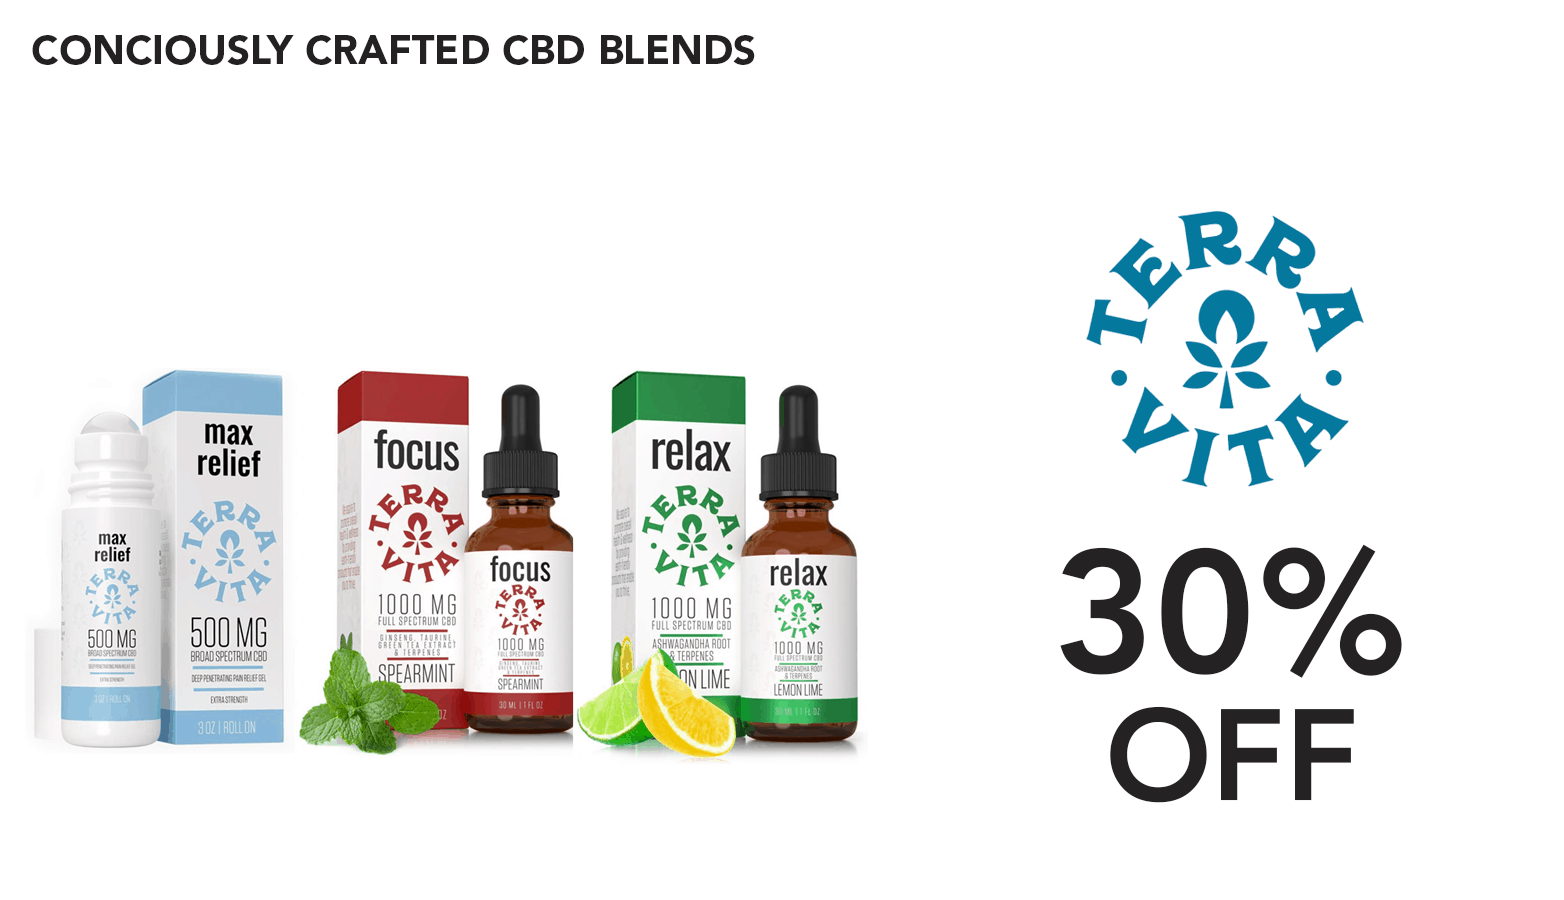 TerraVita CBD Discount Coupon Code Relax Relief Focus